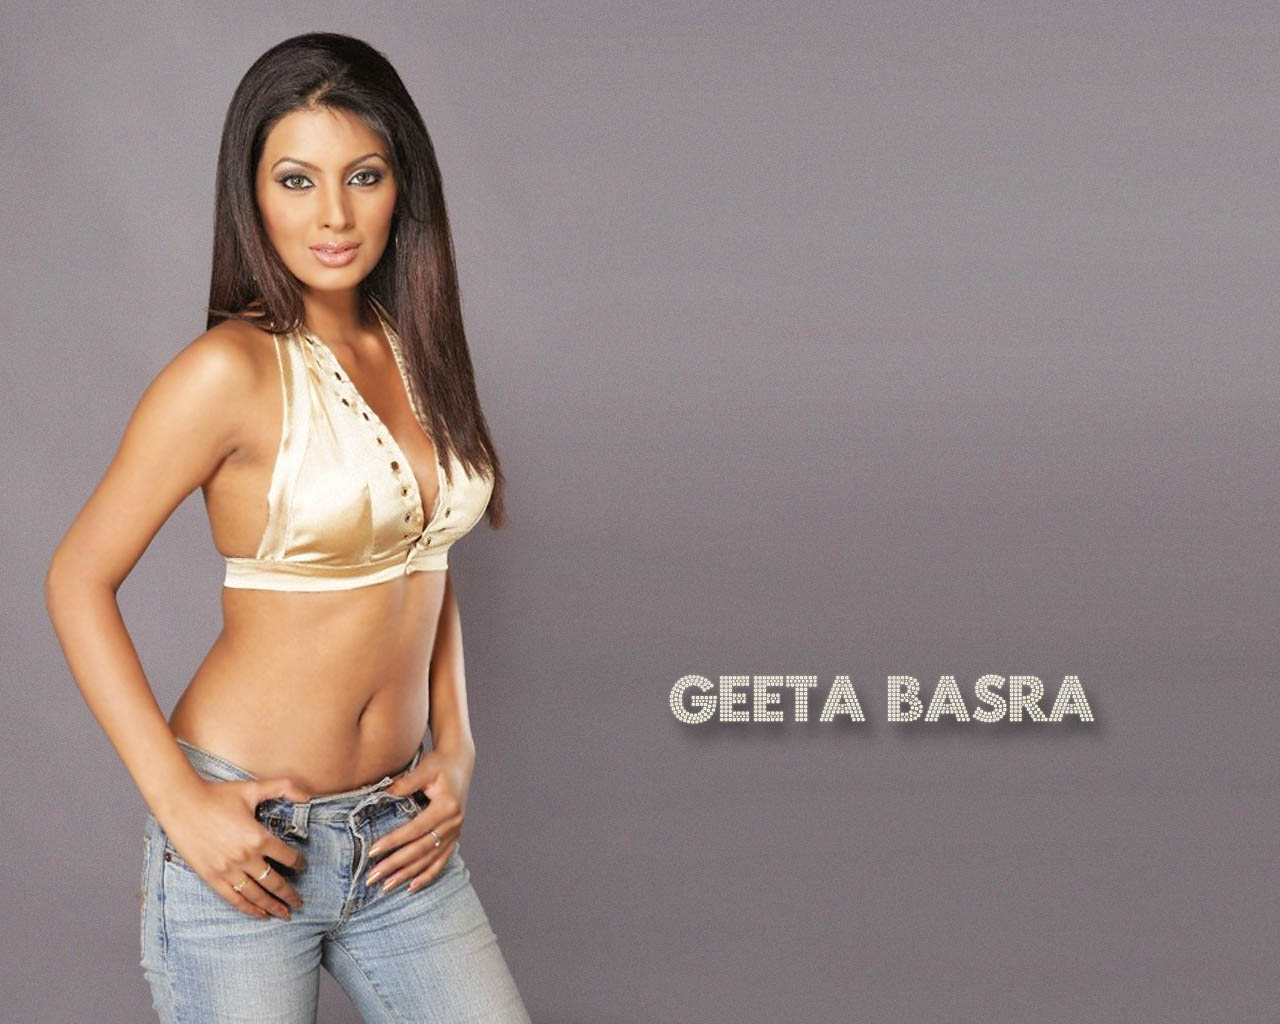 Geeta Basra Hot Wallpapers Fashion 2013 Carolina Arango